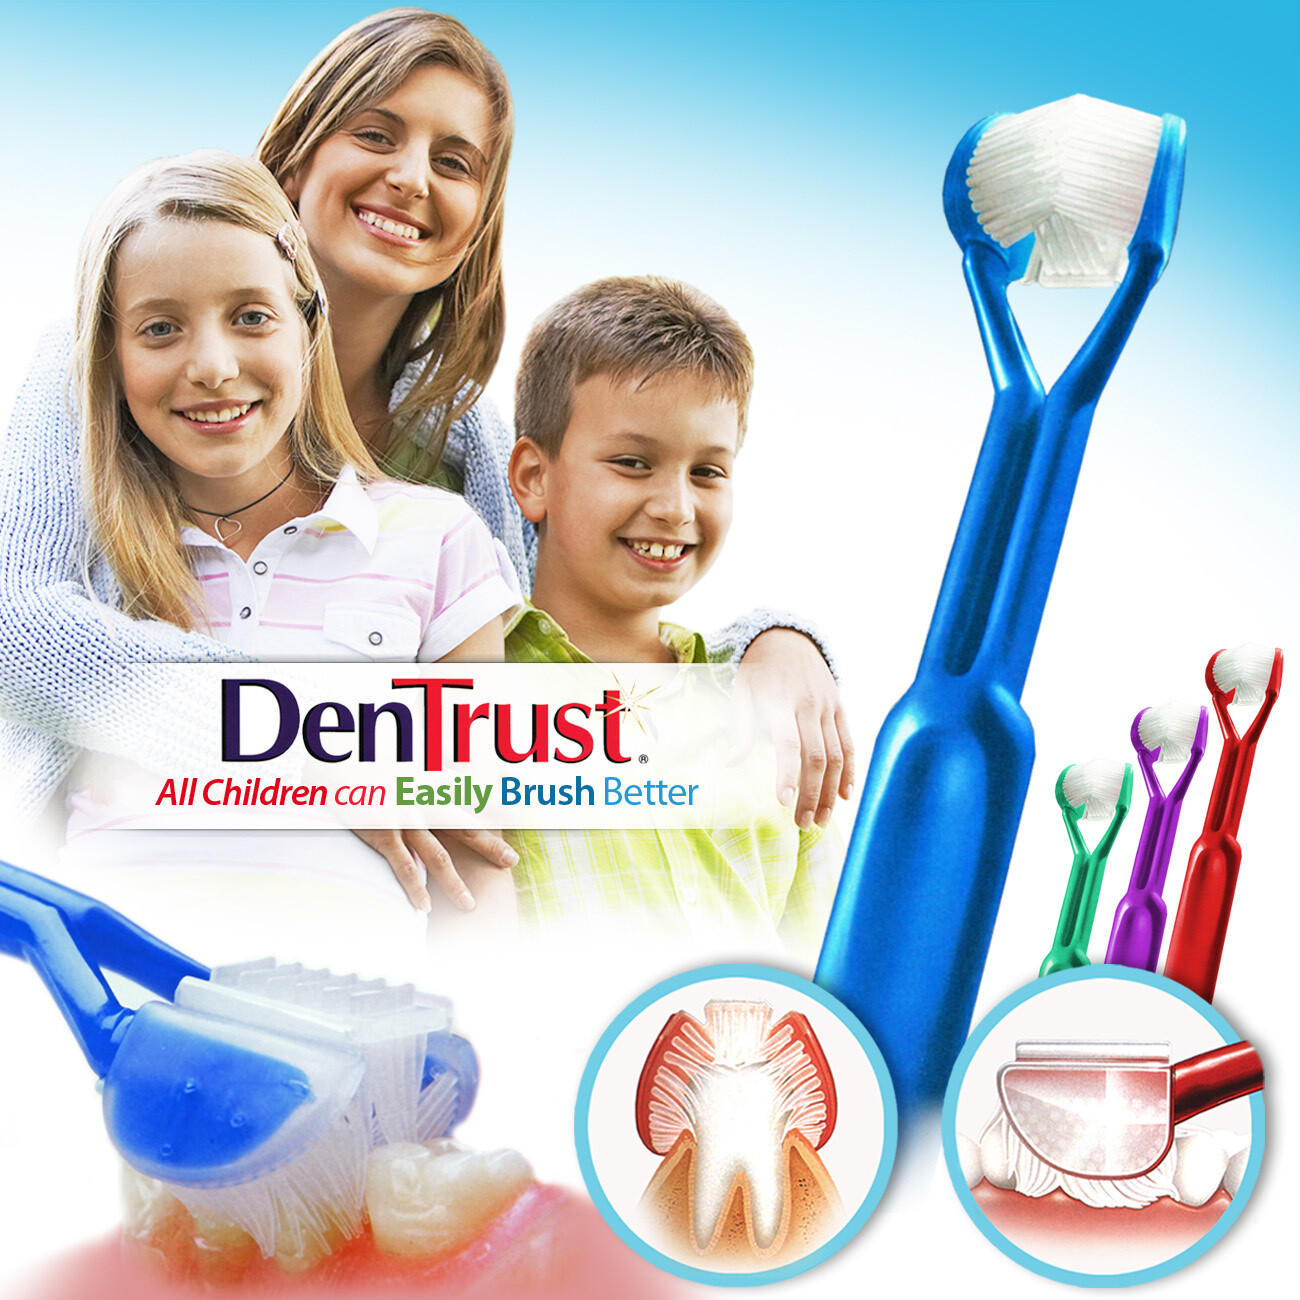 4-PK: DenTrust 3-SIDED Toothbrush : All Children Can Easily Brush Better :: Clinically Proven Results :: Fast, Easy & More Effective for Youth Teens Children Child Special Needs Autism Braces